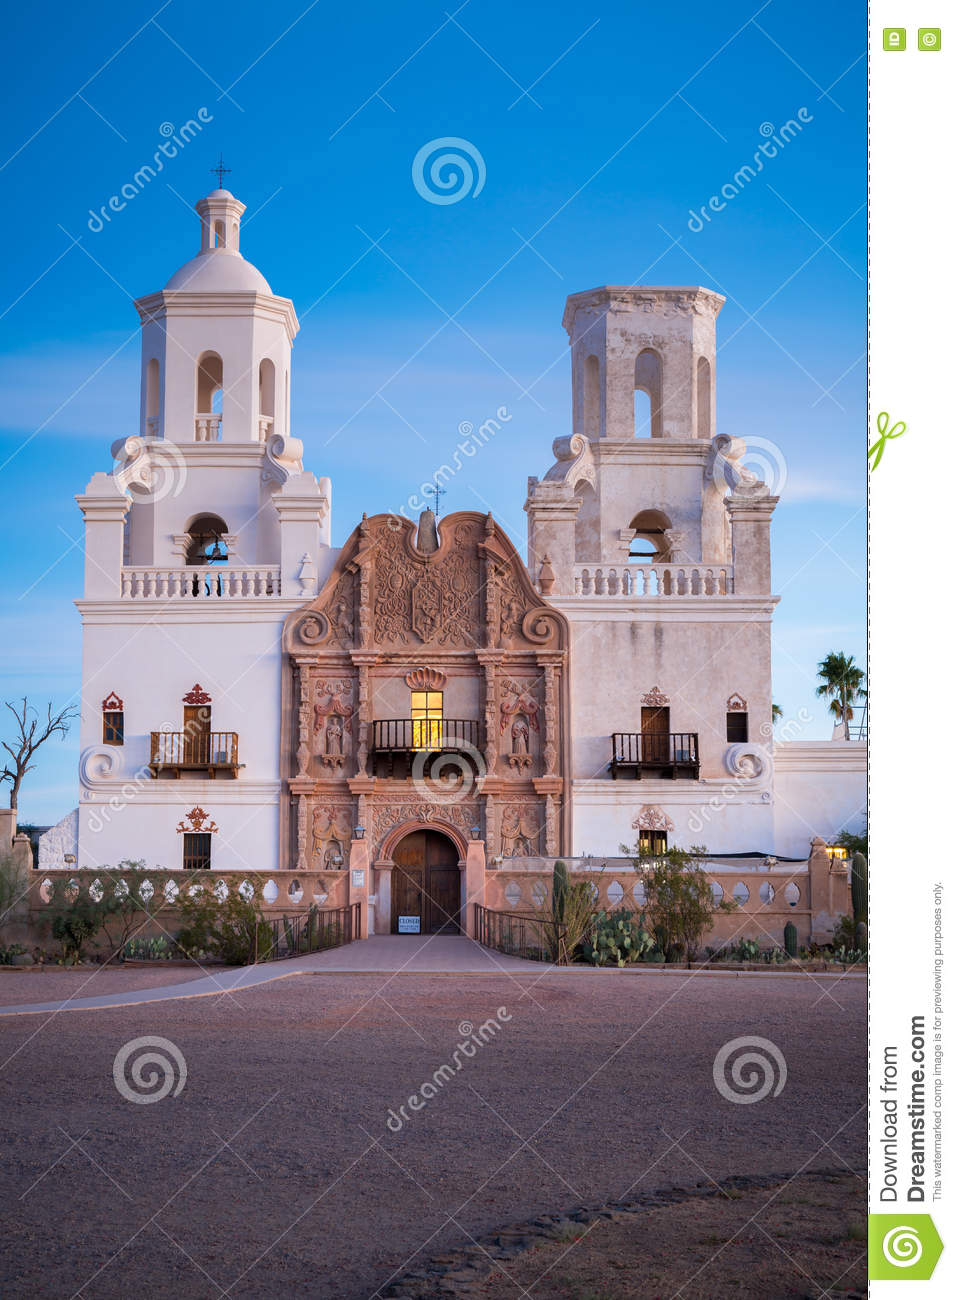 San Xavier Del Bac in Tucson Arizona